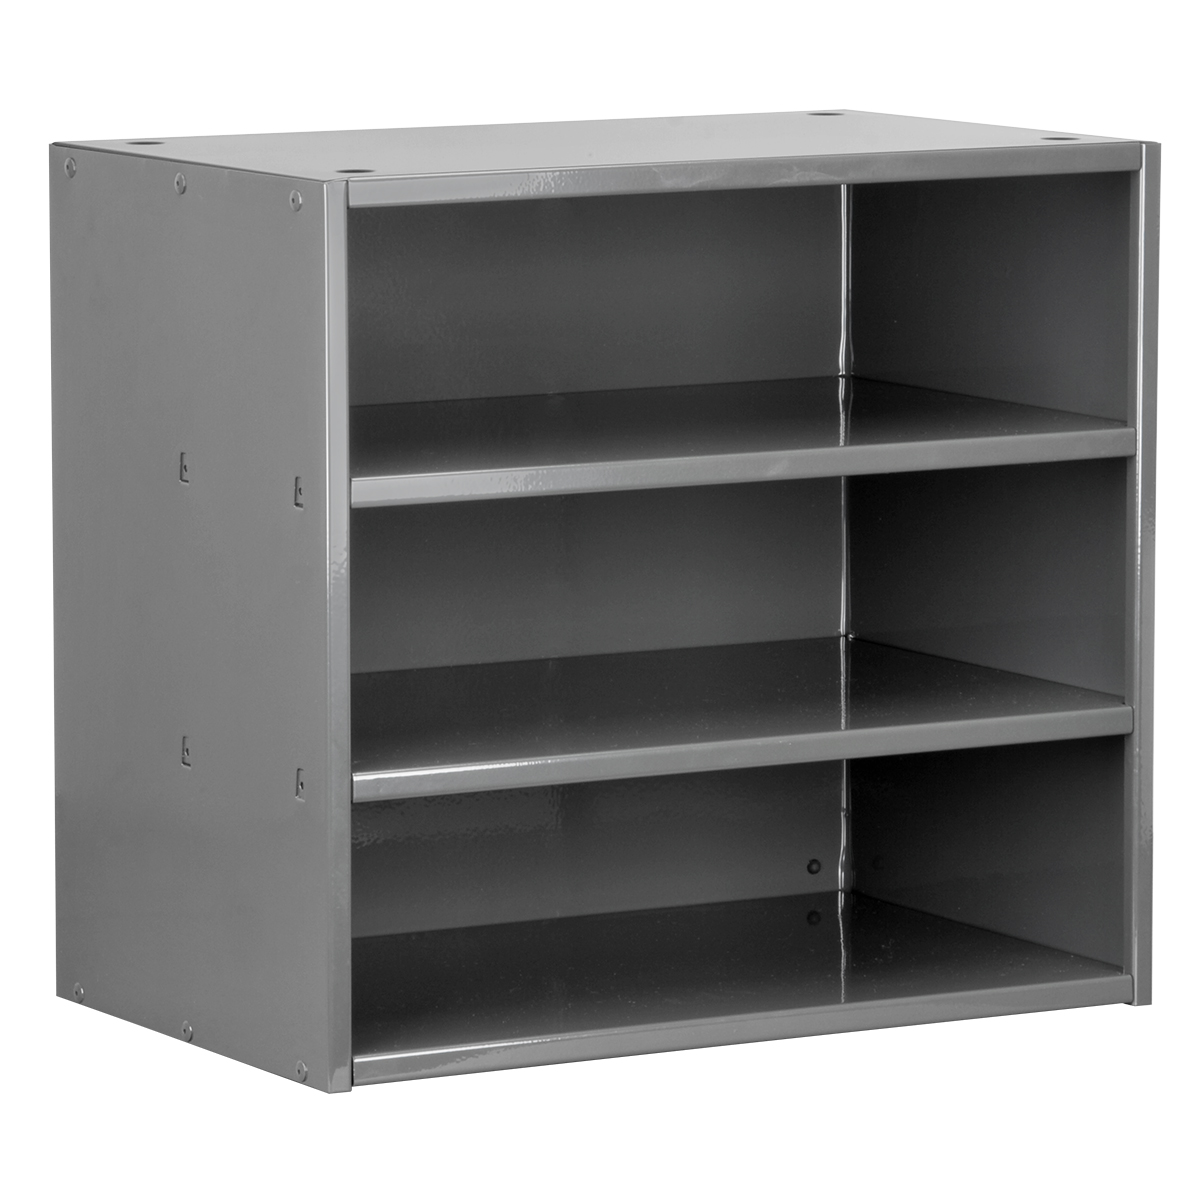 Item DISCONTINUED by Manufacturer.  Modular Cabinet, 18x11x16, no Drawers, Gray (AD1811C).  This item sold in carton quantities of 1.